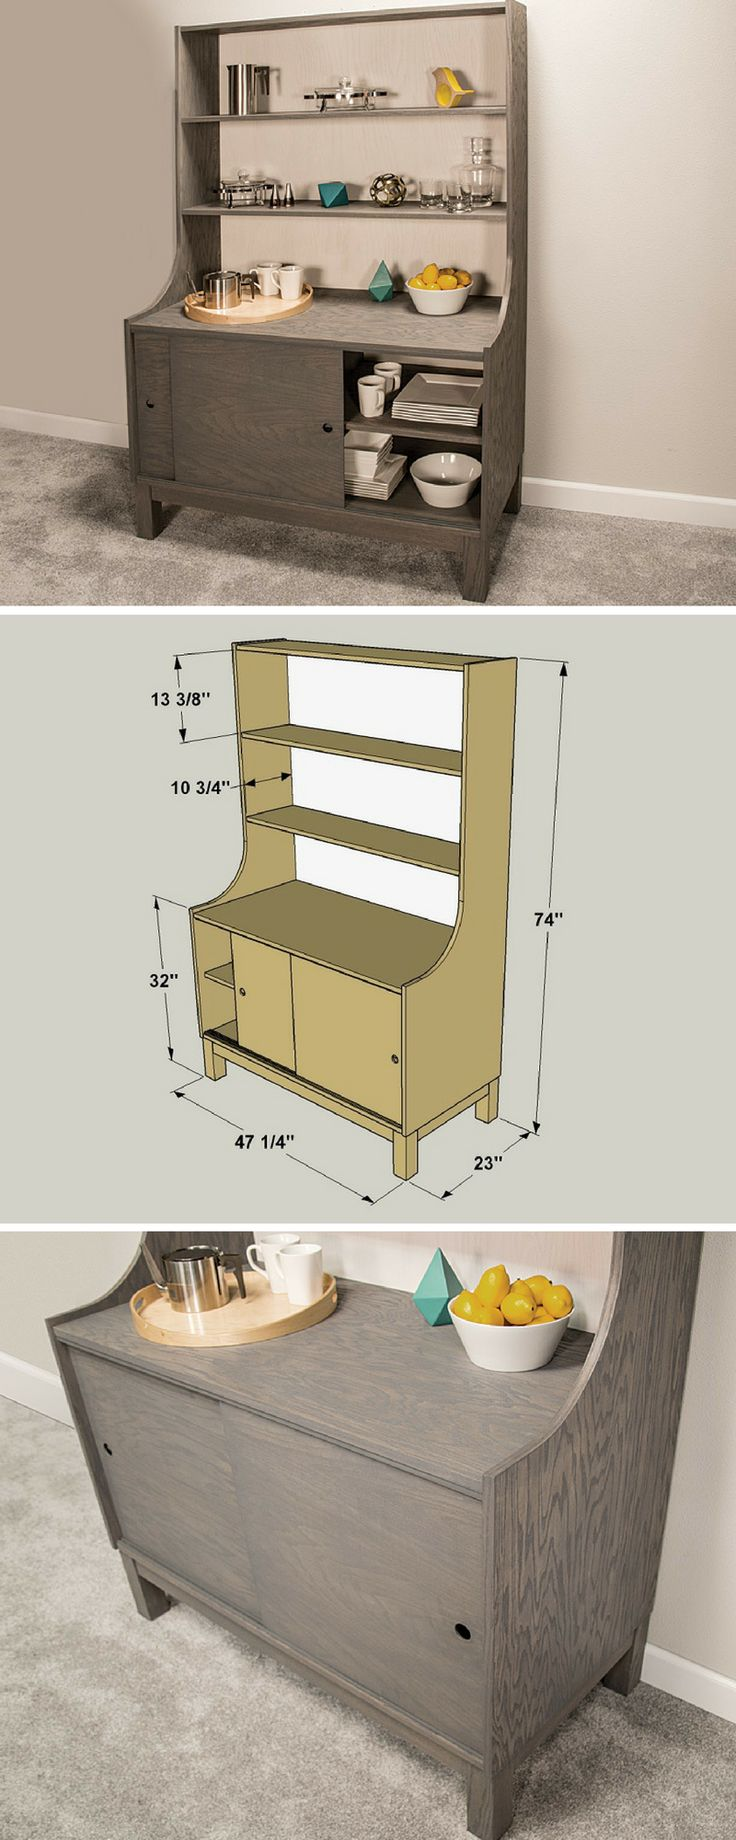 How To Build A DIY Dining Hutch